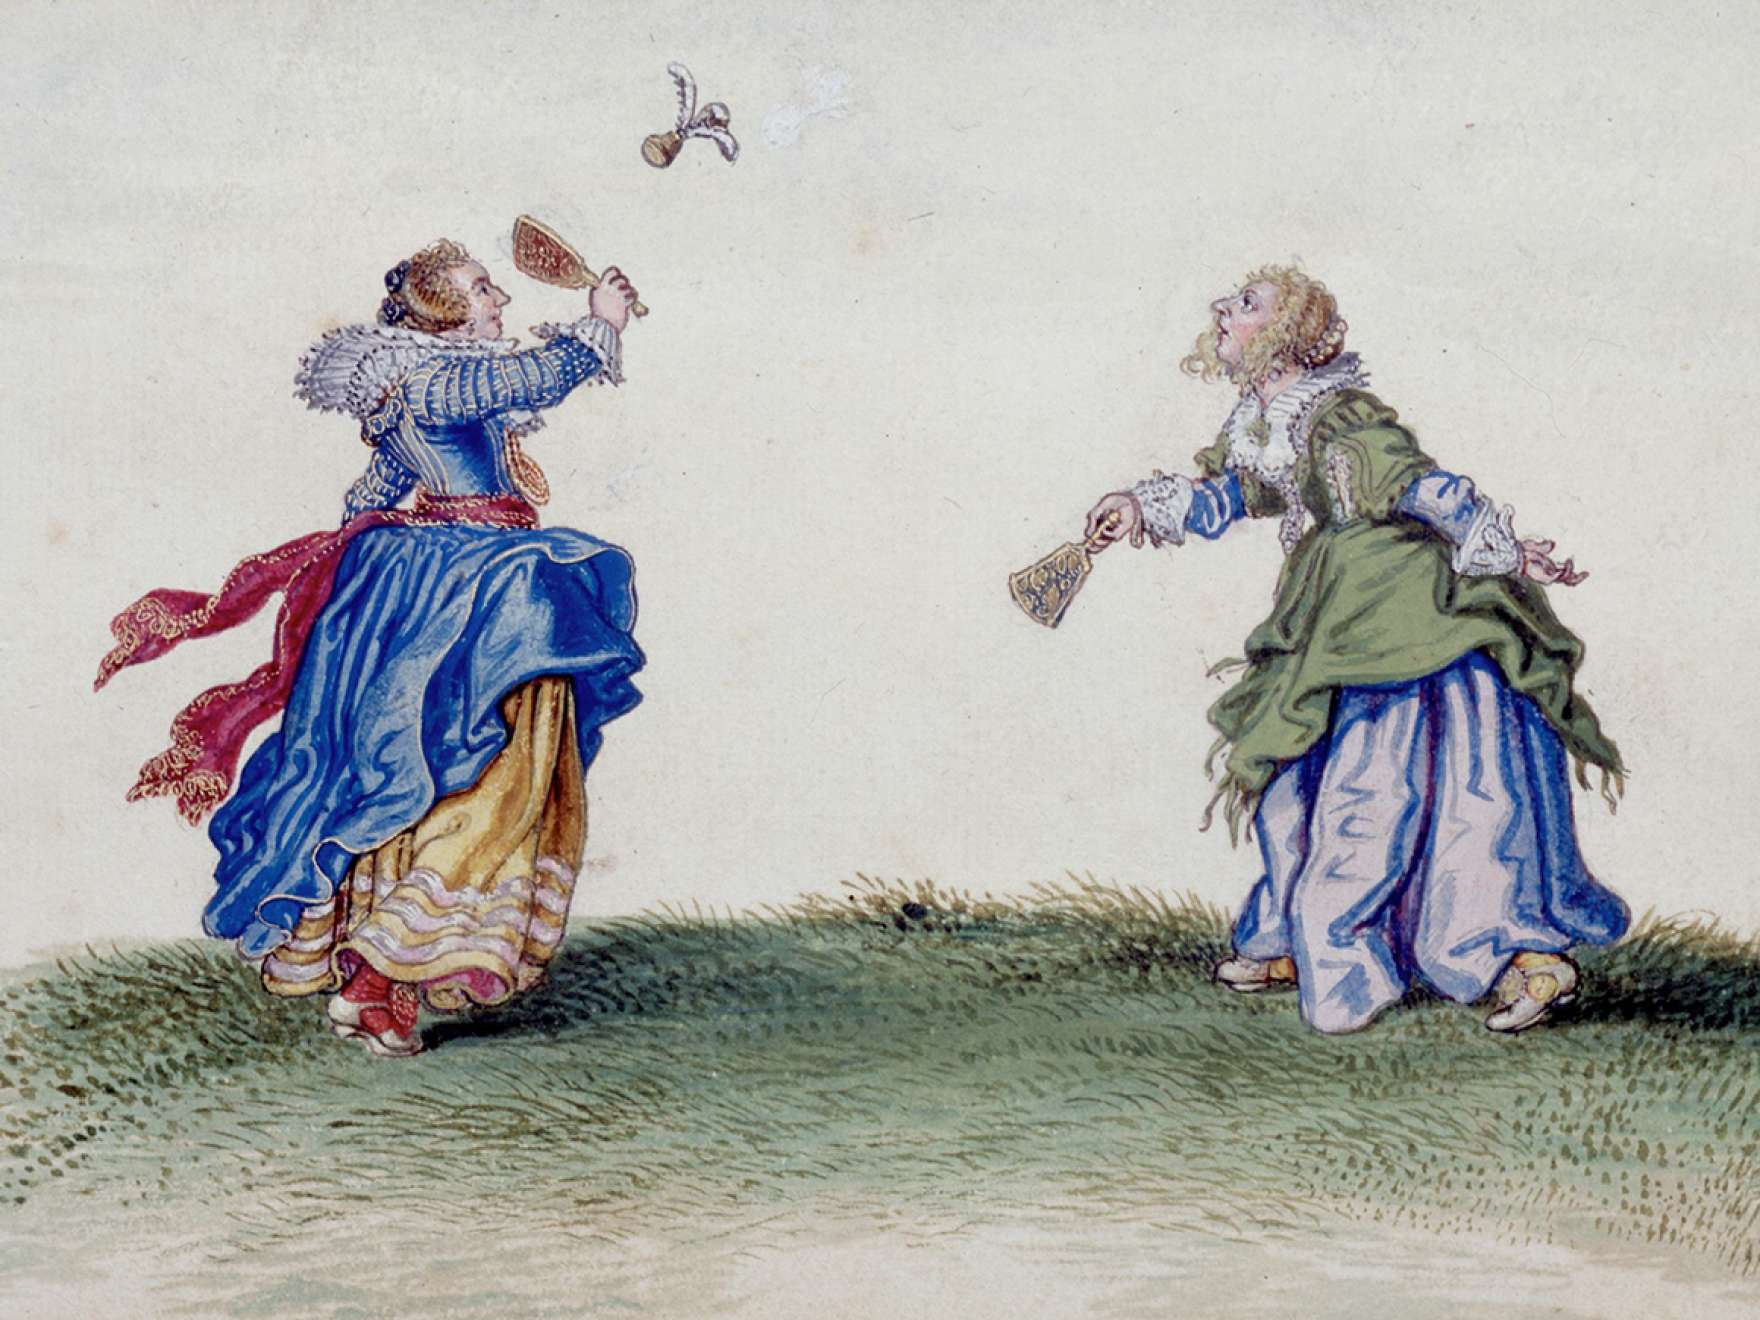 Adriaen Van De Venne, (Watercolor) Two Women Playing Battledore and Shuttlecock, 1625